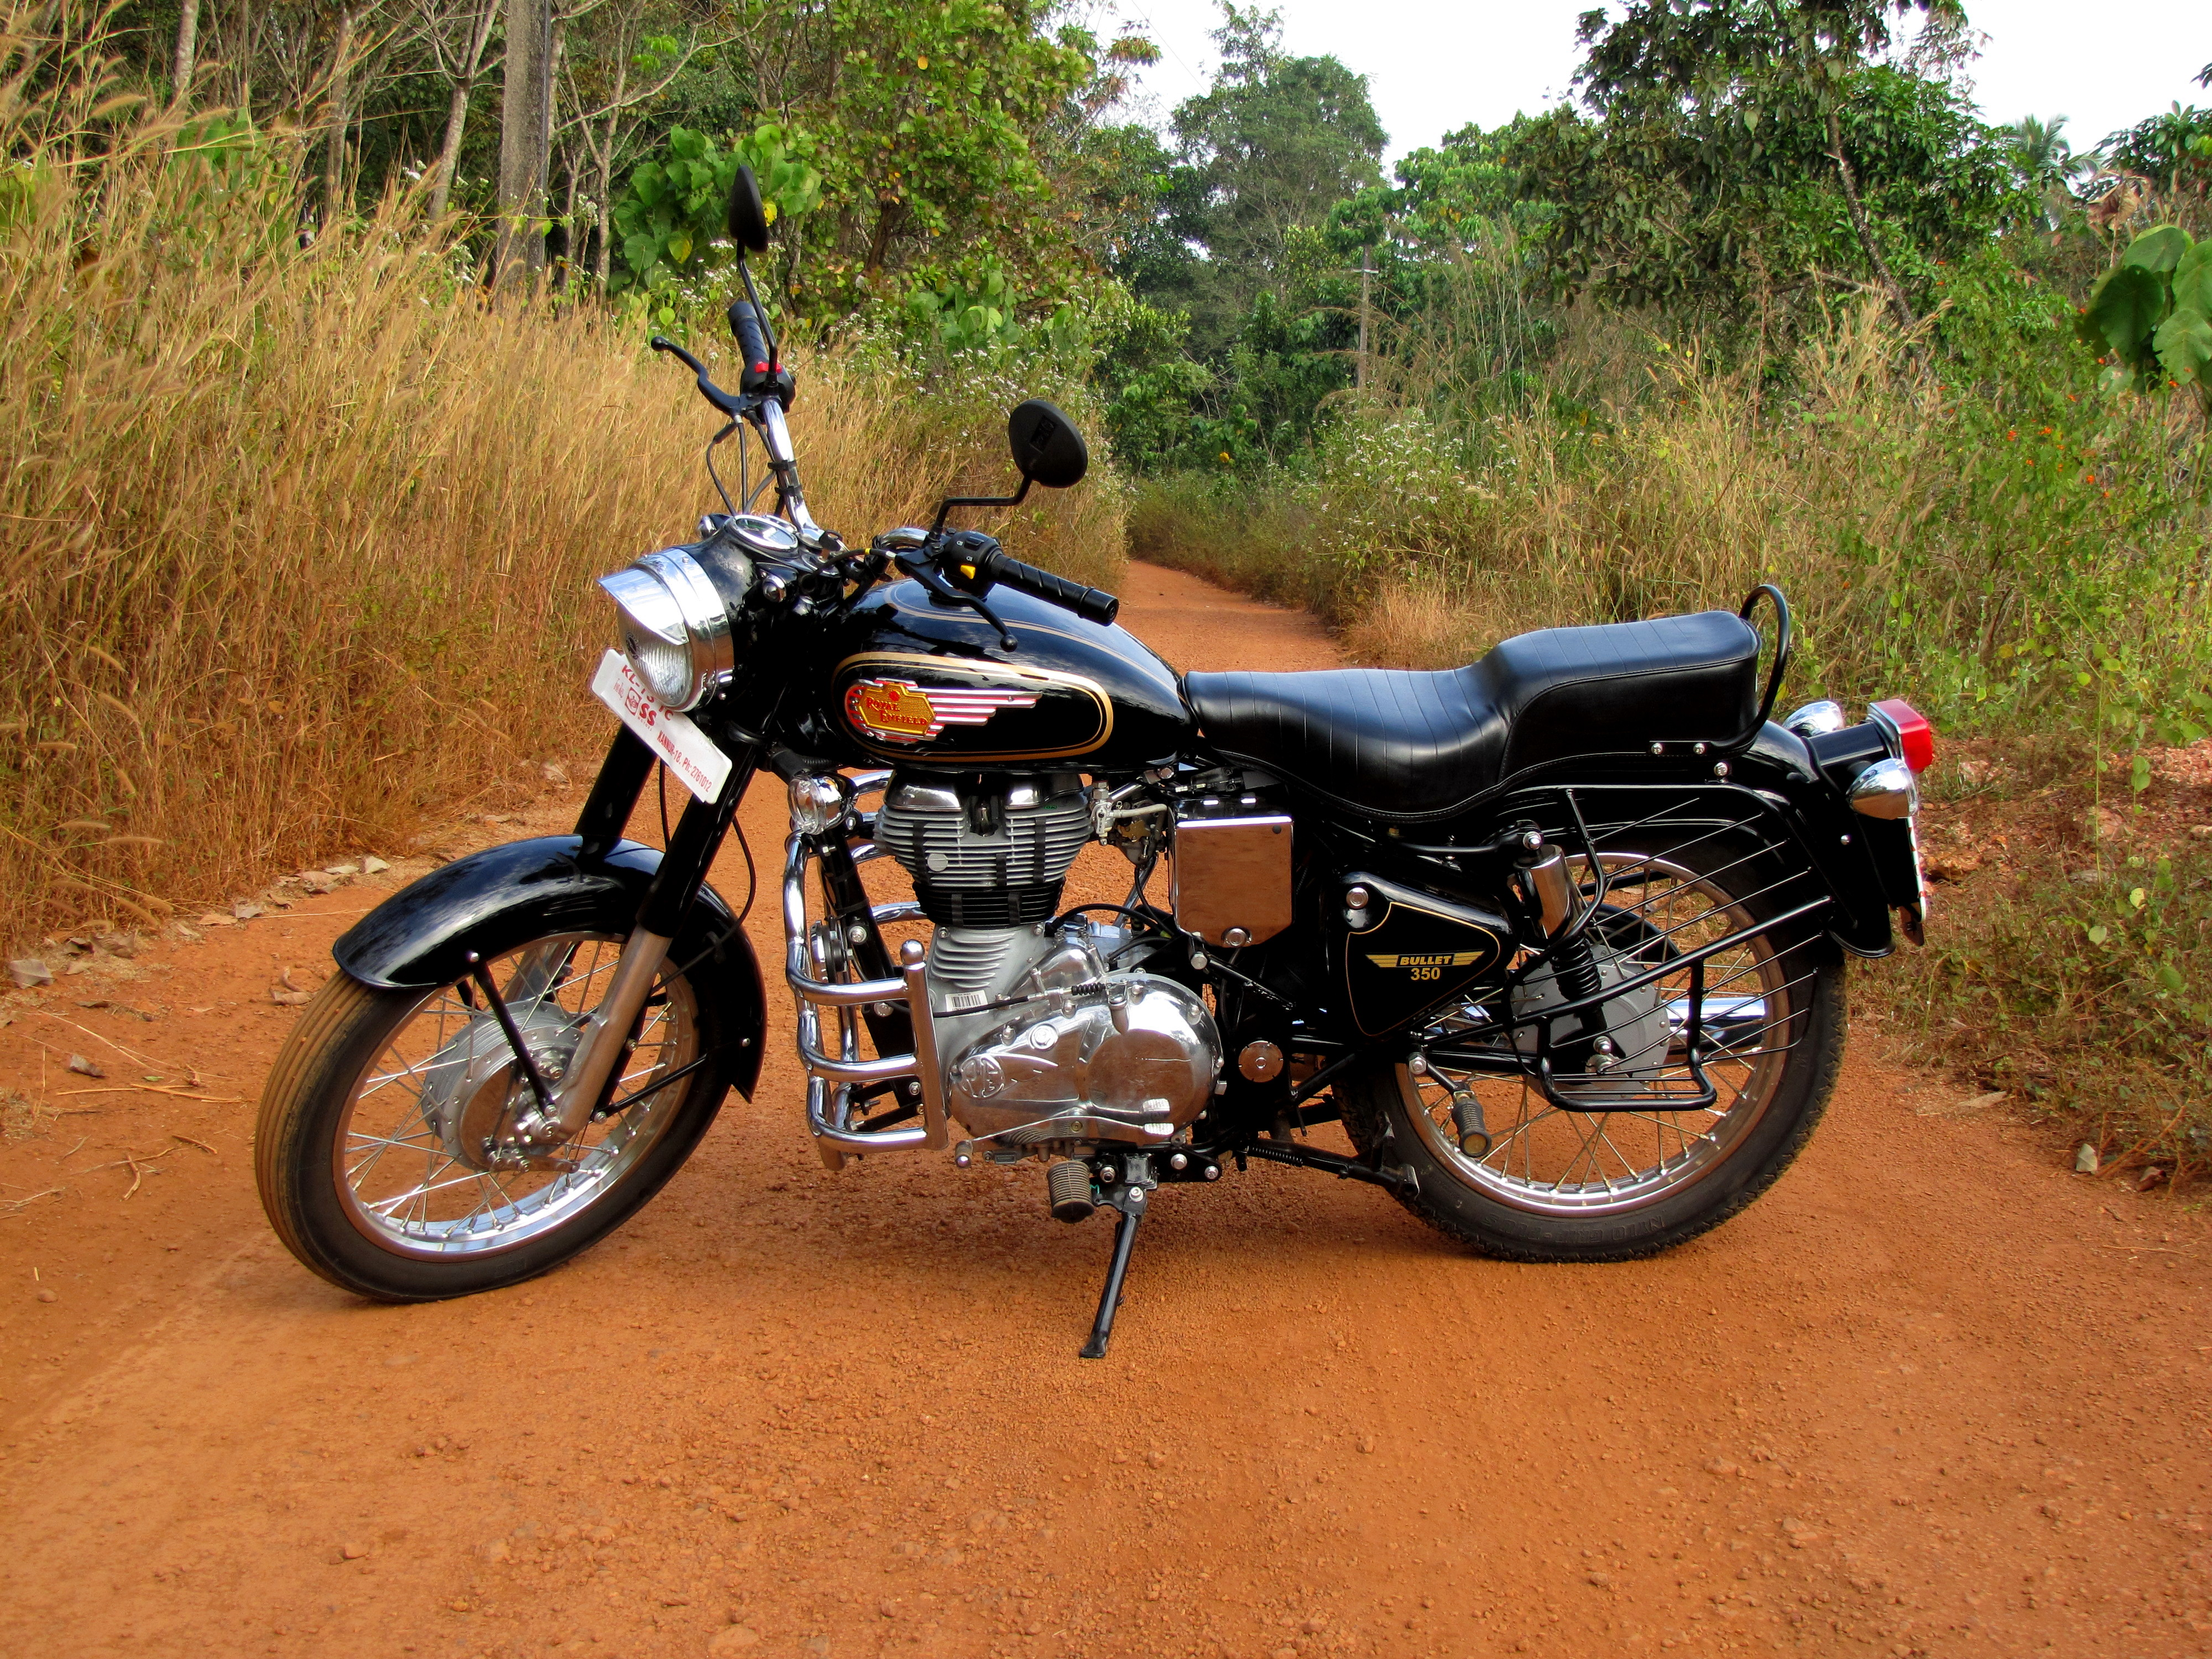 Royal Enfield Bullet 350 Classic 2008 images #123481